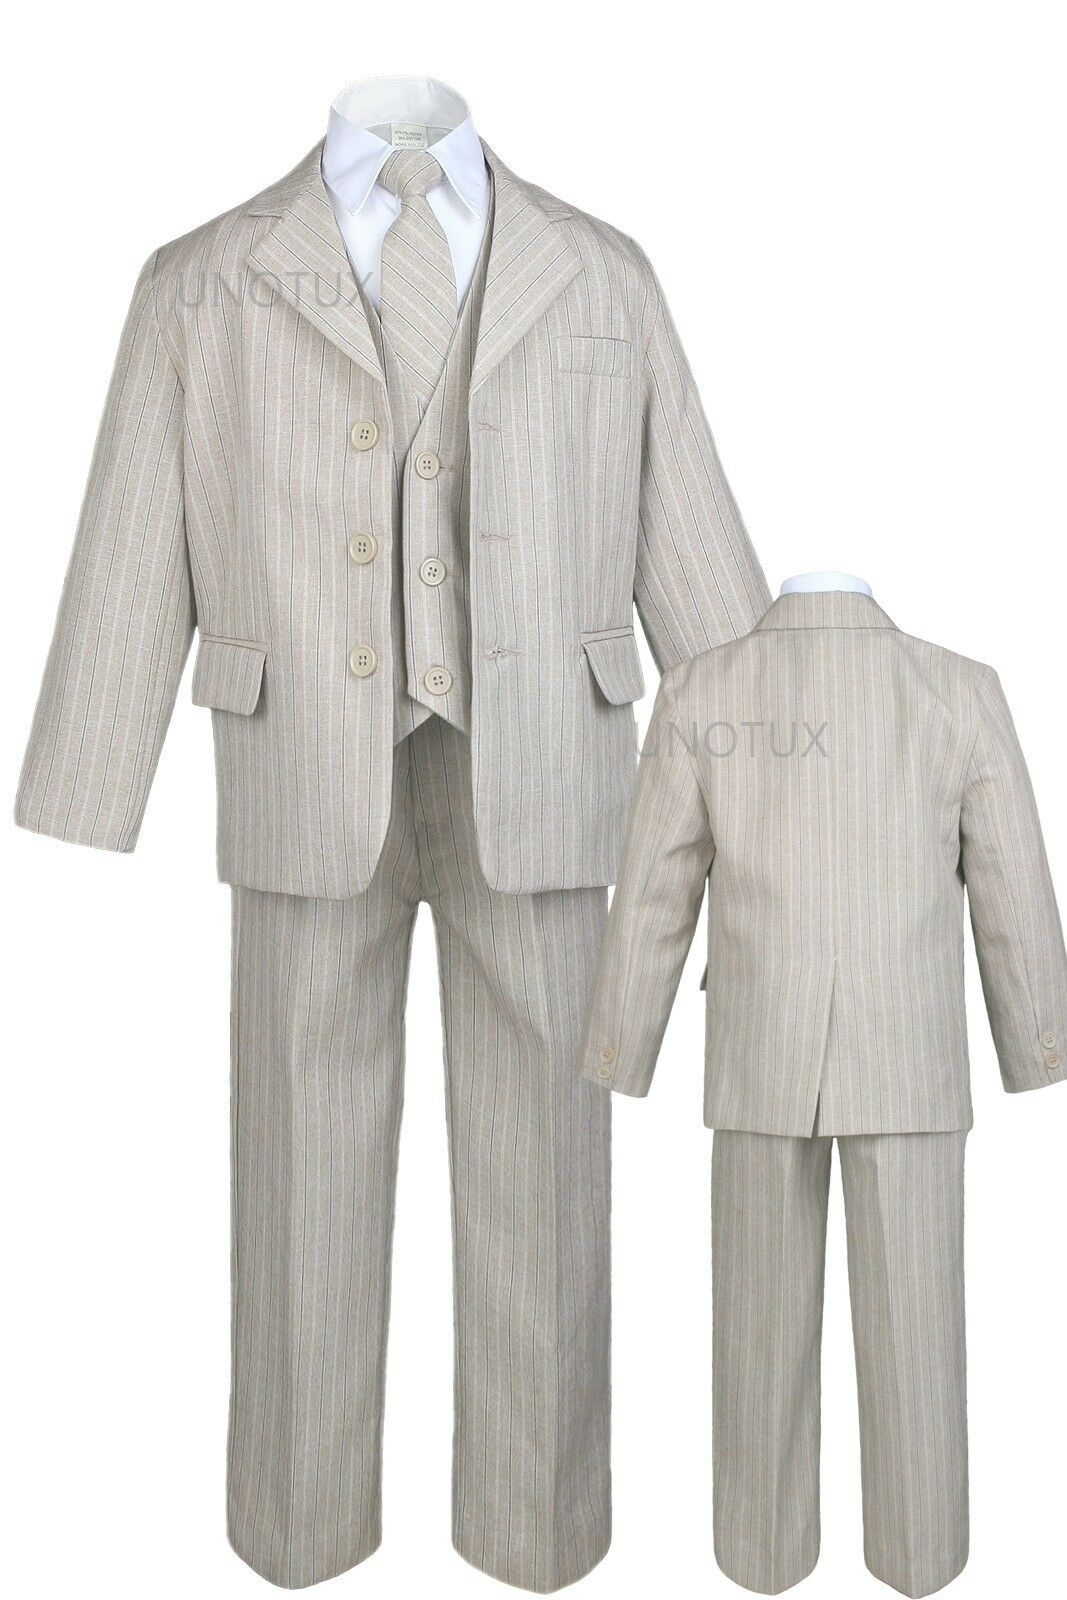 Infant, Toddler Boy Formal Party Tuxedo Wedding Suit Taup...